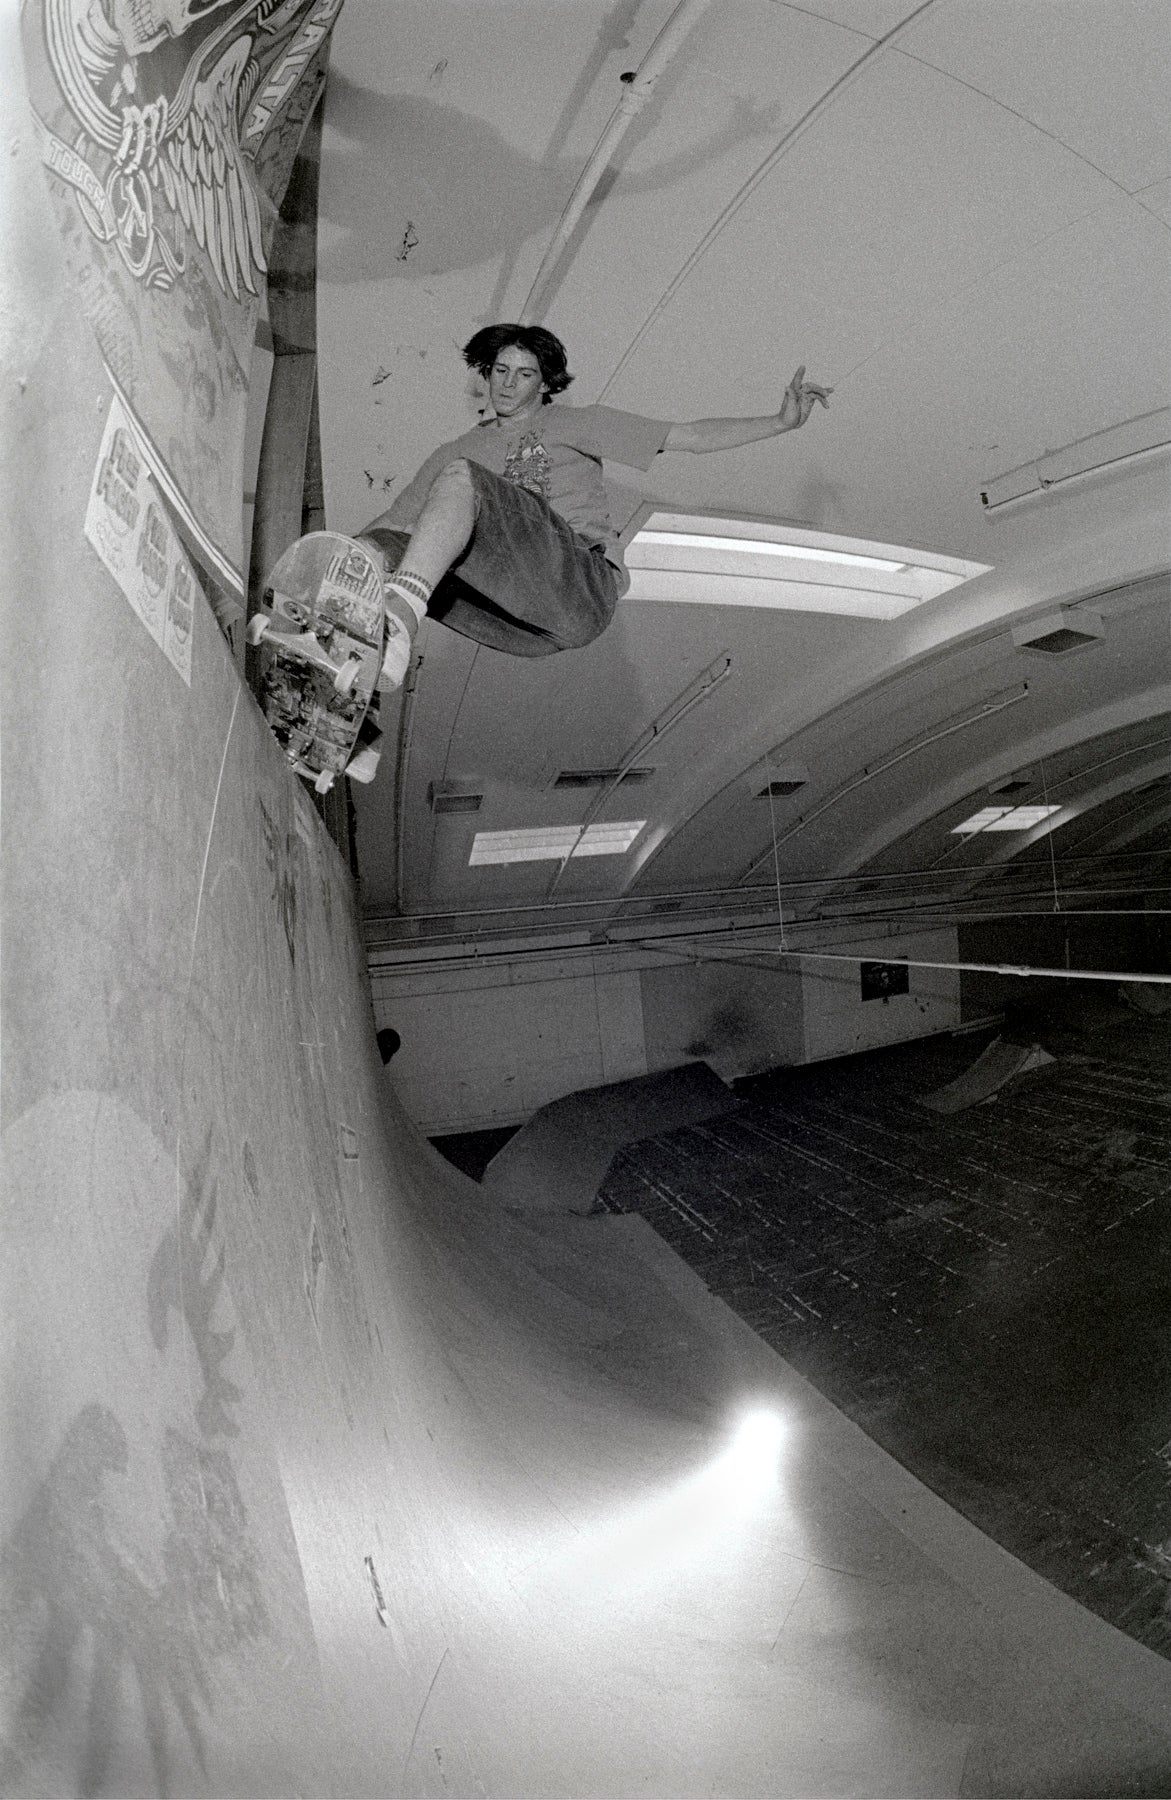 Image of Wade Speyer, Goleta 1991, print by Tobin Yelland